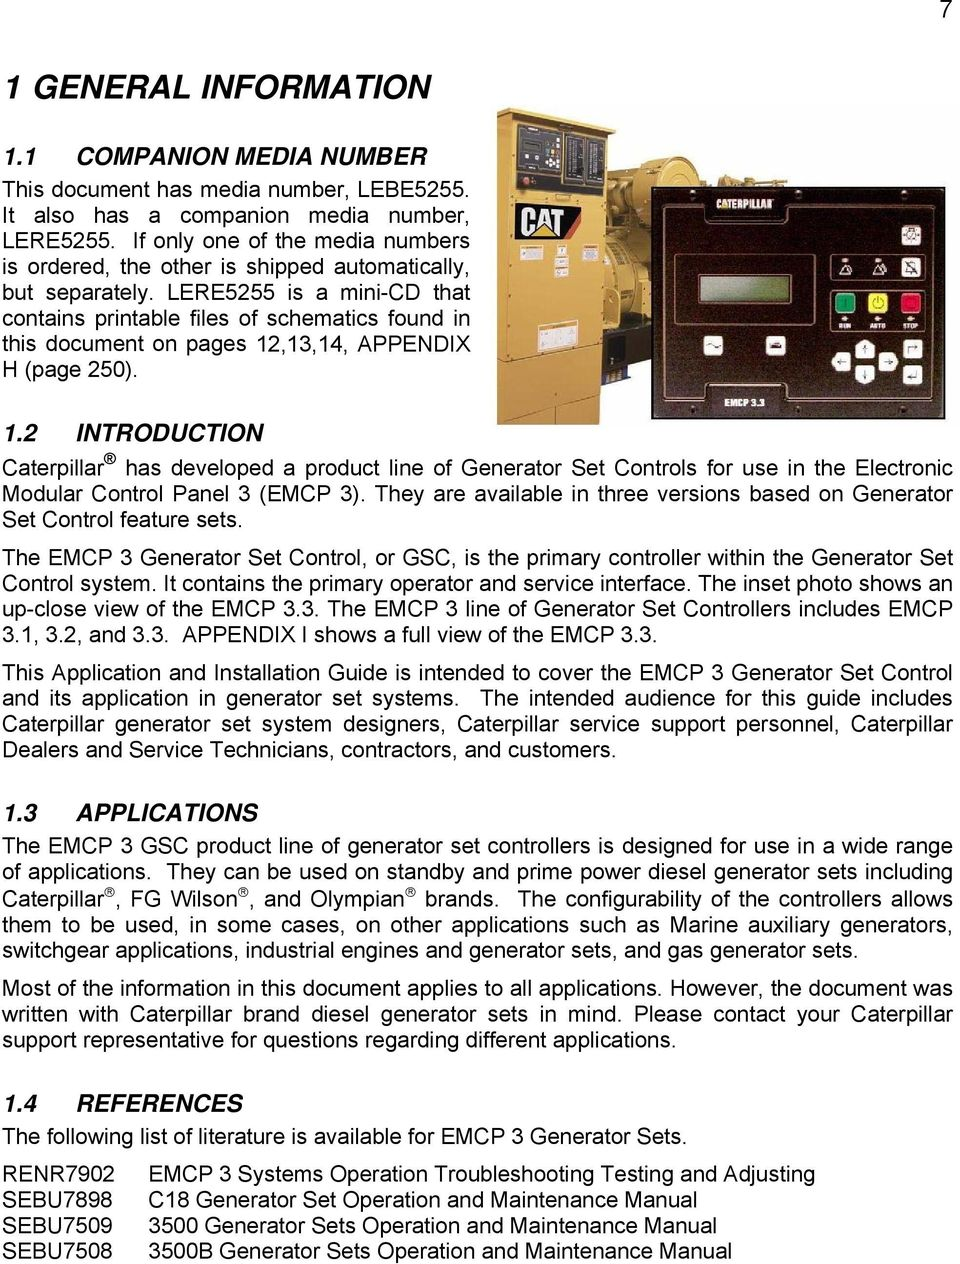 EMCP 3.1, 3.2, 3.3 GENERATOR SET CONTROL - PDF Olympian Generator Wiring Diagram Cat on heater wiring diagram, olympian generator wiring model gep18-2, olympian generator fuel tank, power converter charger installation diagram, olympian generator sets, olympian generator control panel, manufactured home electrical wiring diagram, wilson alternator wiring diagram, genset wiring diagram, portable generators repair wiring diagram, rv wiring diagram, motorhome battery wiring diagram, olympian generator drawings, 12 lead 3 phase motor wiring diagram, toyota alternator wiring diagram, rv charger wire diagram,